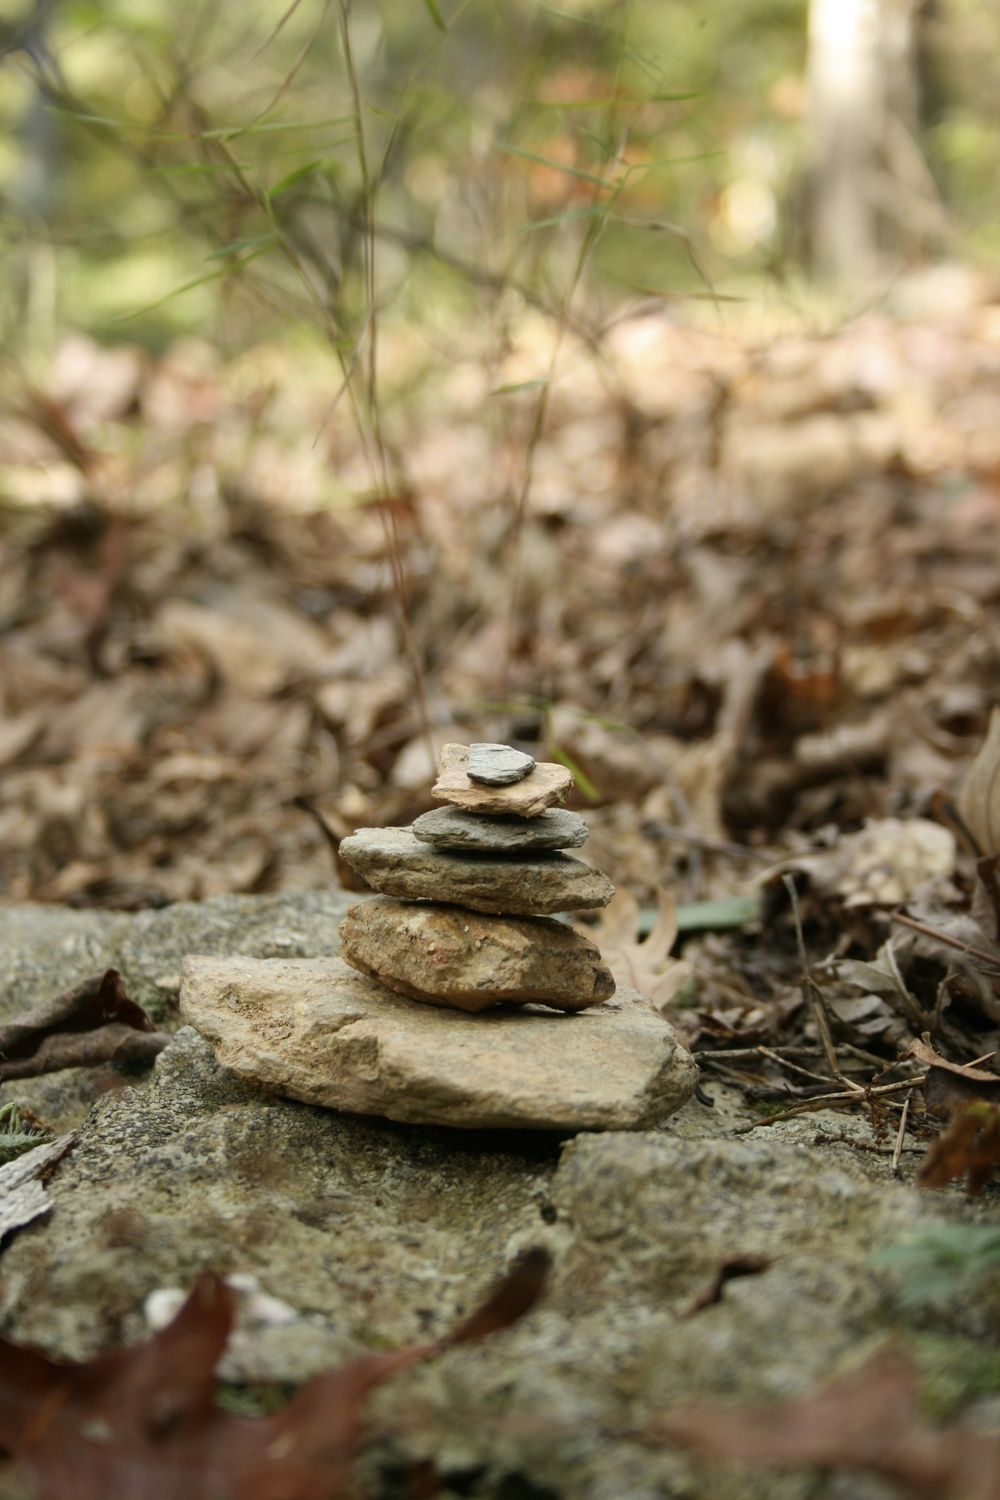 A rock cairn I spotted at Yogaville a few years ago; balance and equanimity incarnate!